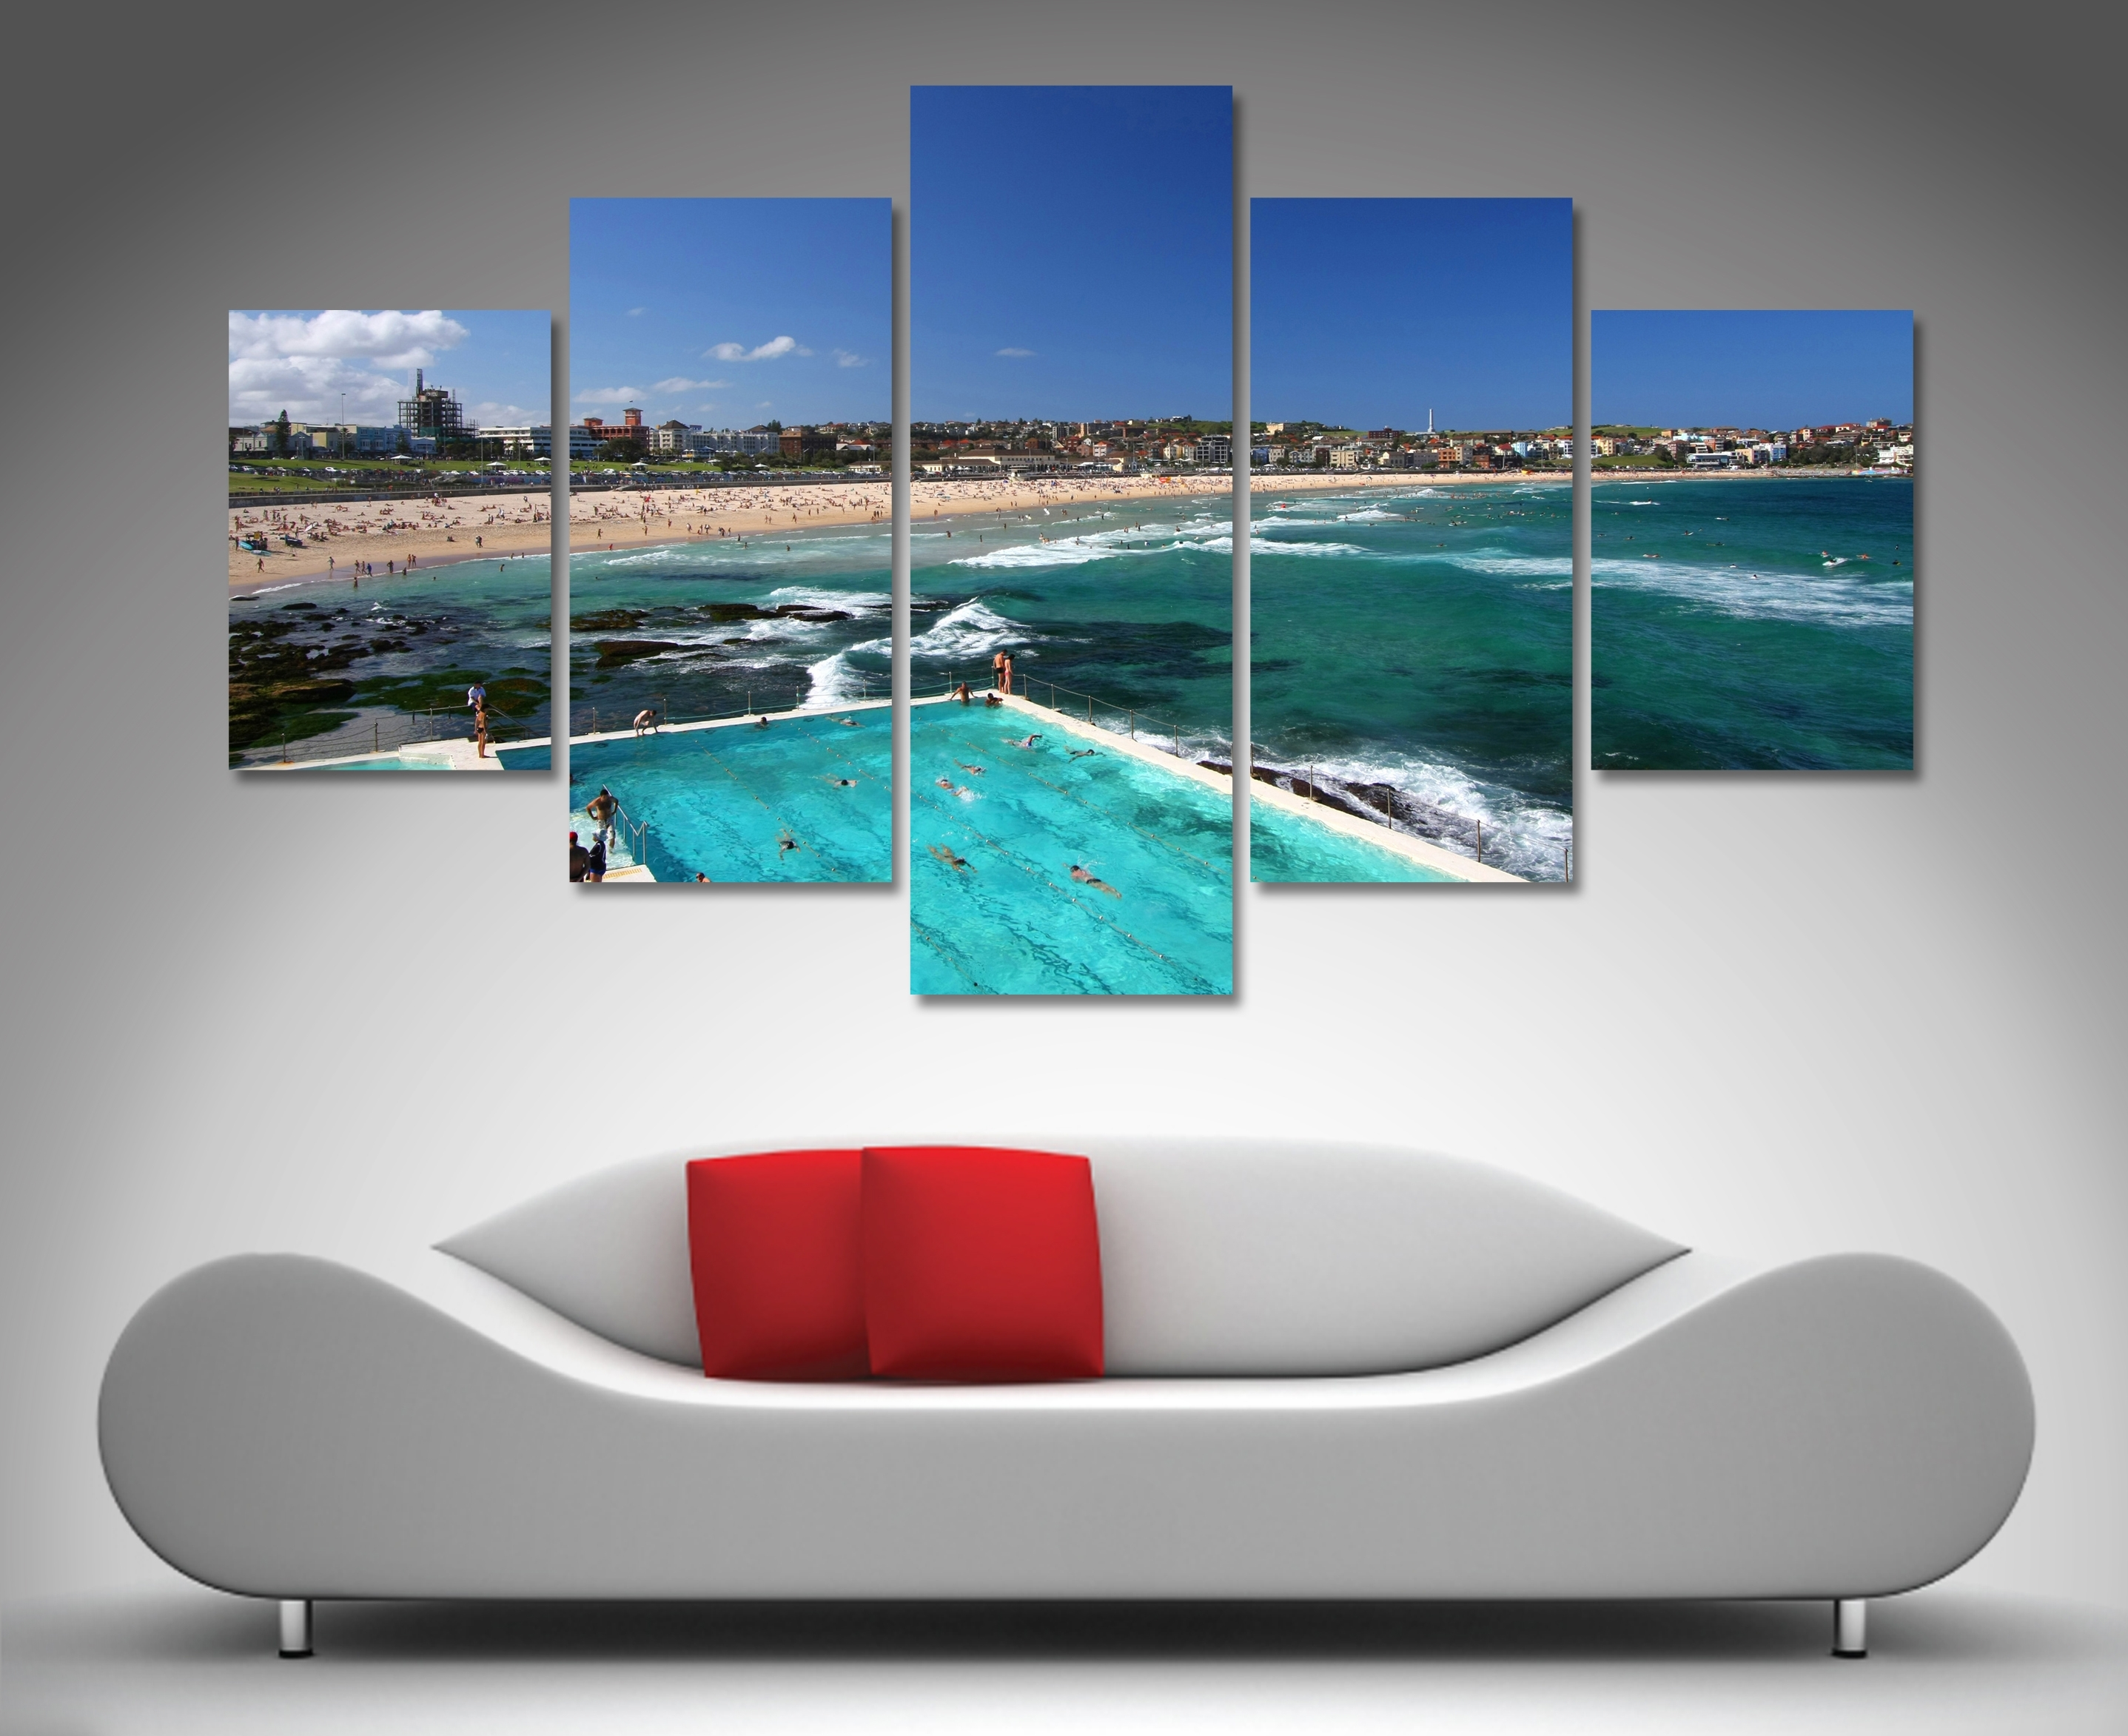 Bondi Beach 5 Panel Wall Art | Canvas Printing Australia Intended For Recent Beach Canvas Wall Art (View 6 of 15)